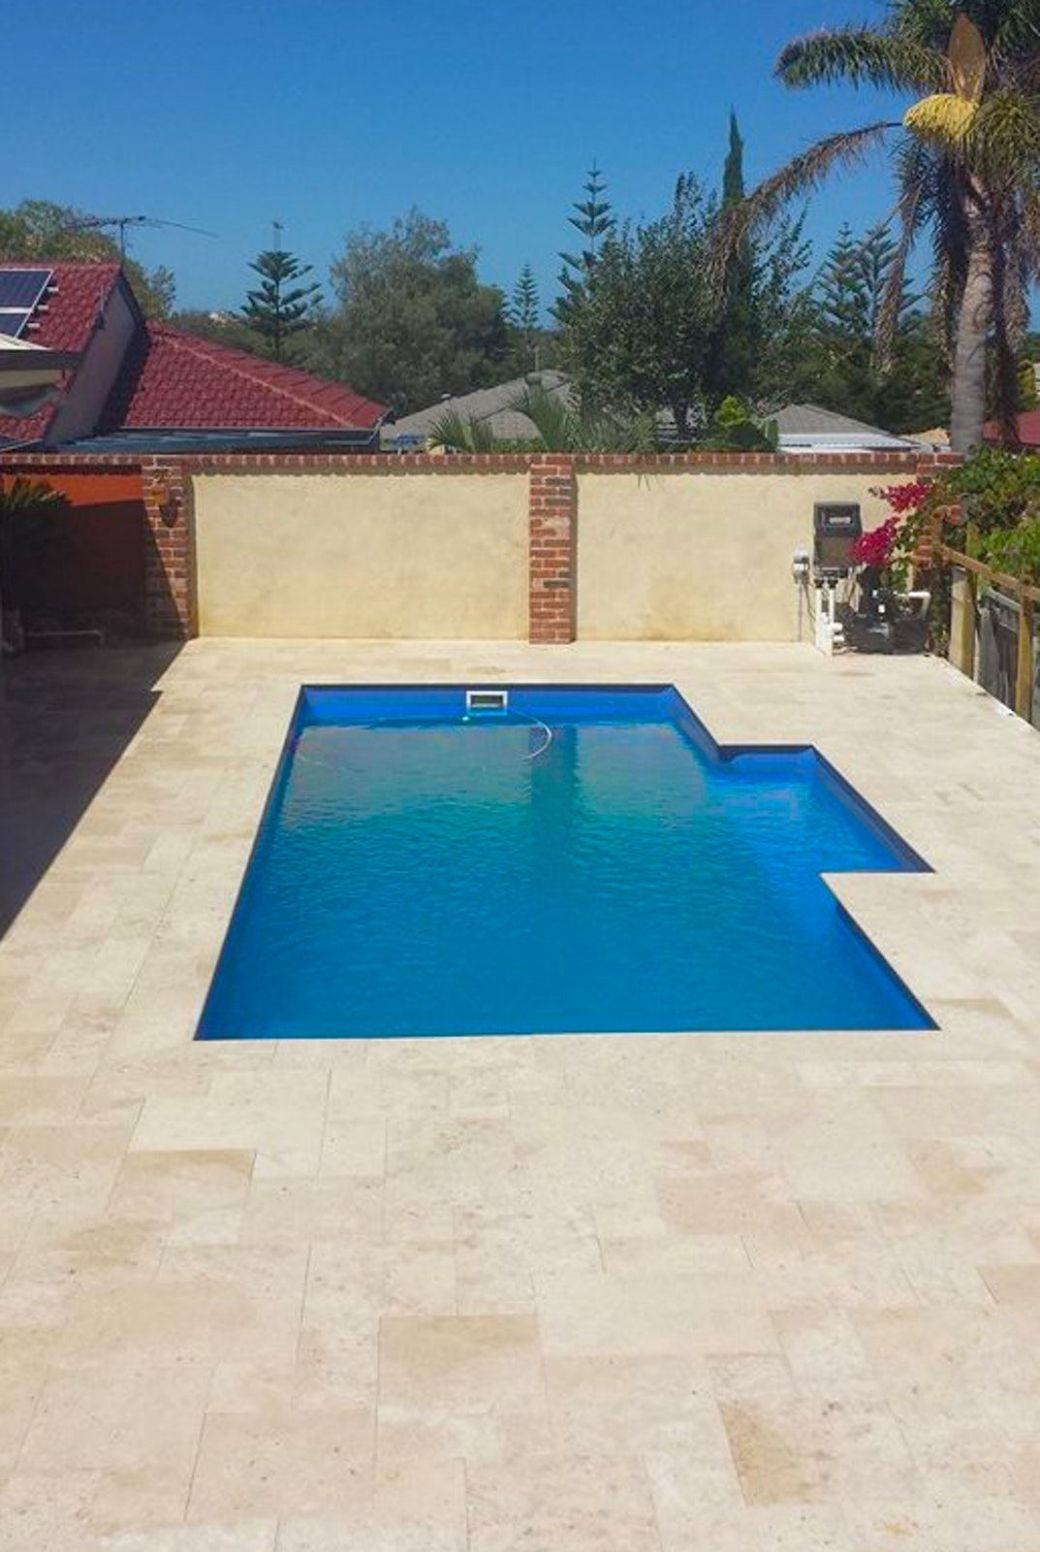 Roma travertine french pattern pavers & squarenose capping | Pool ..